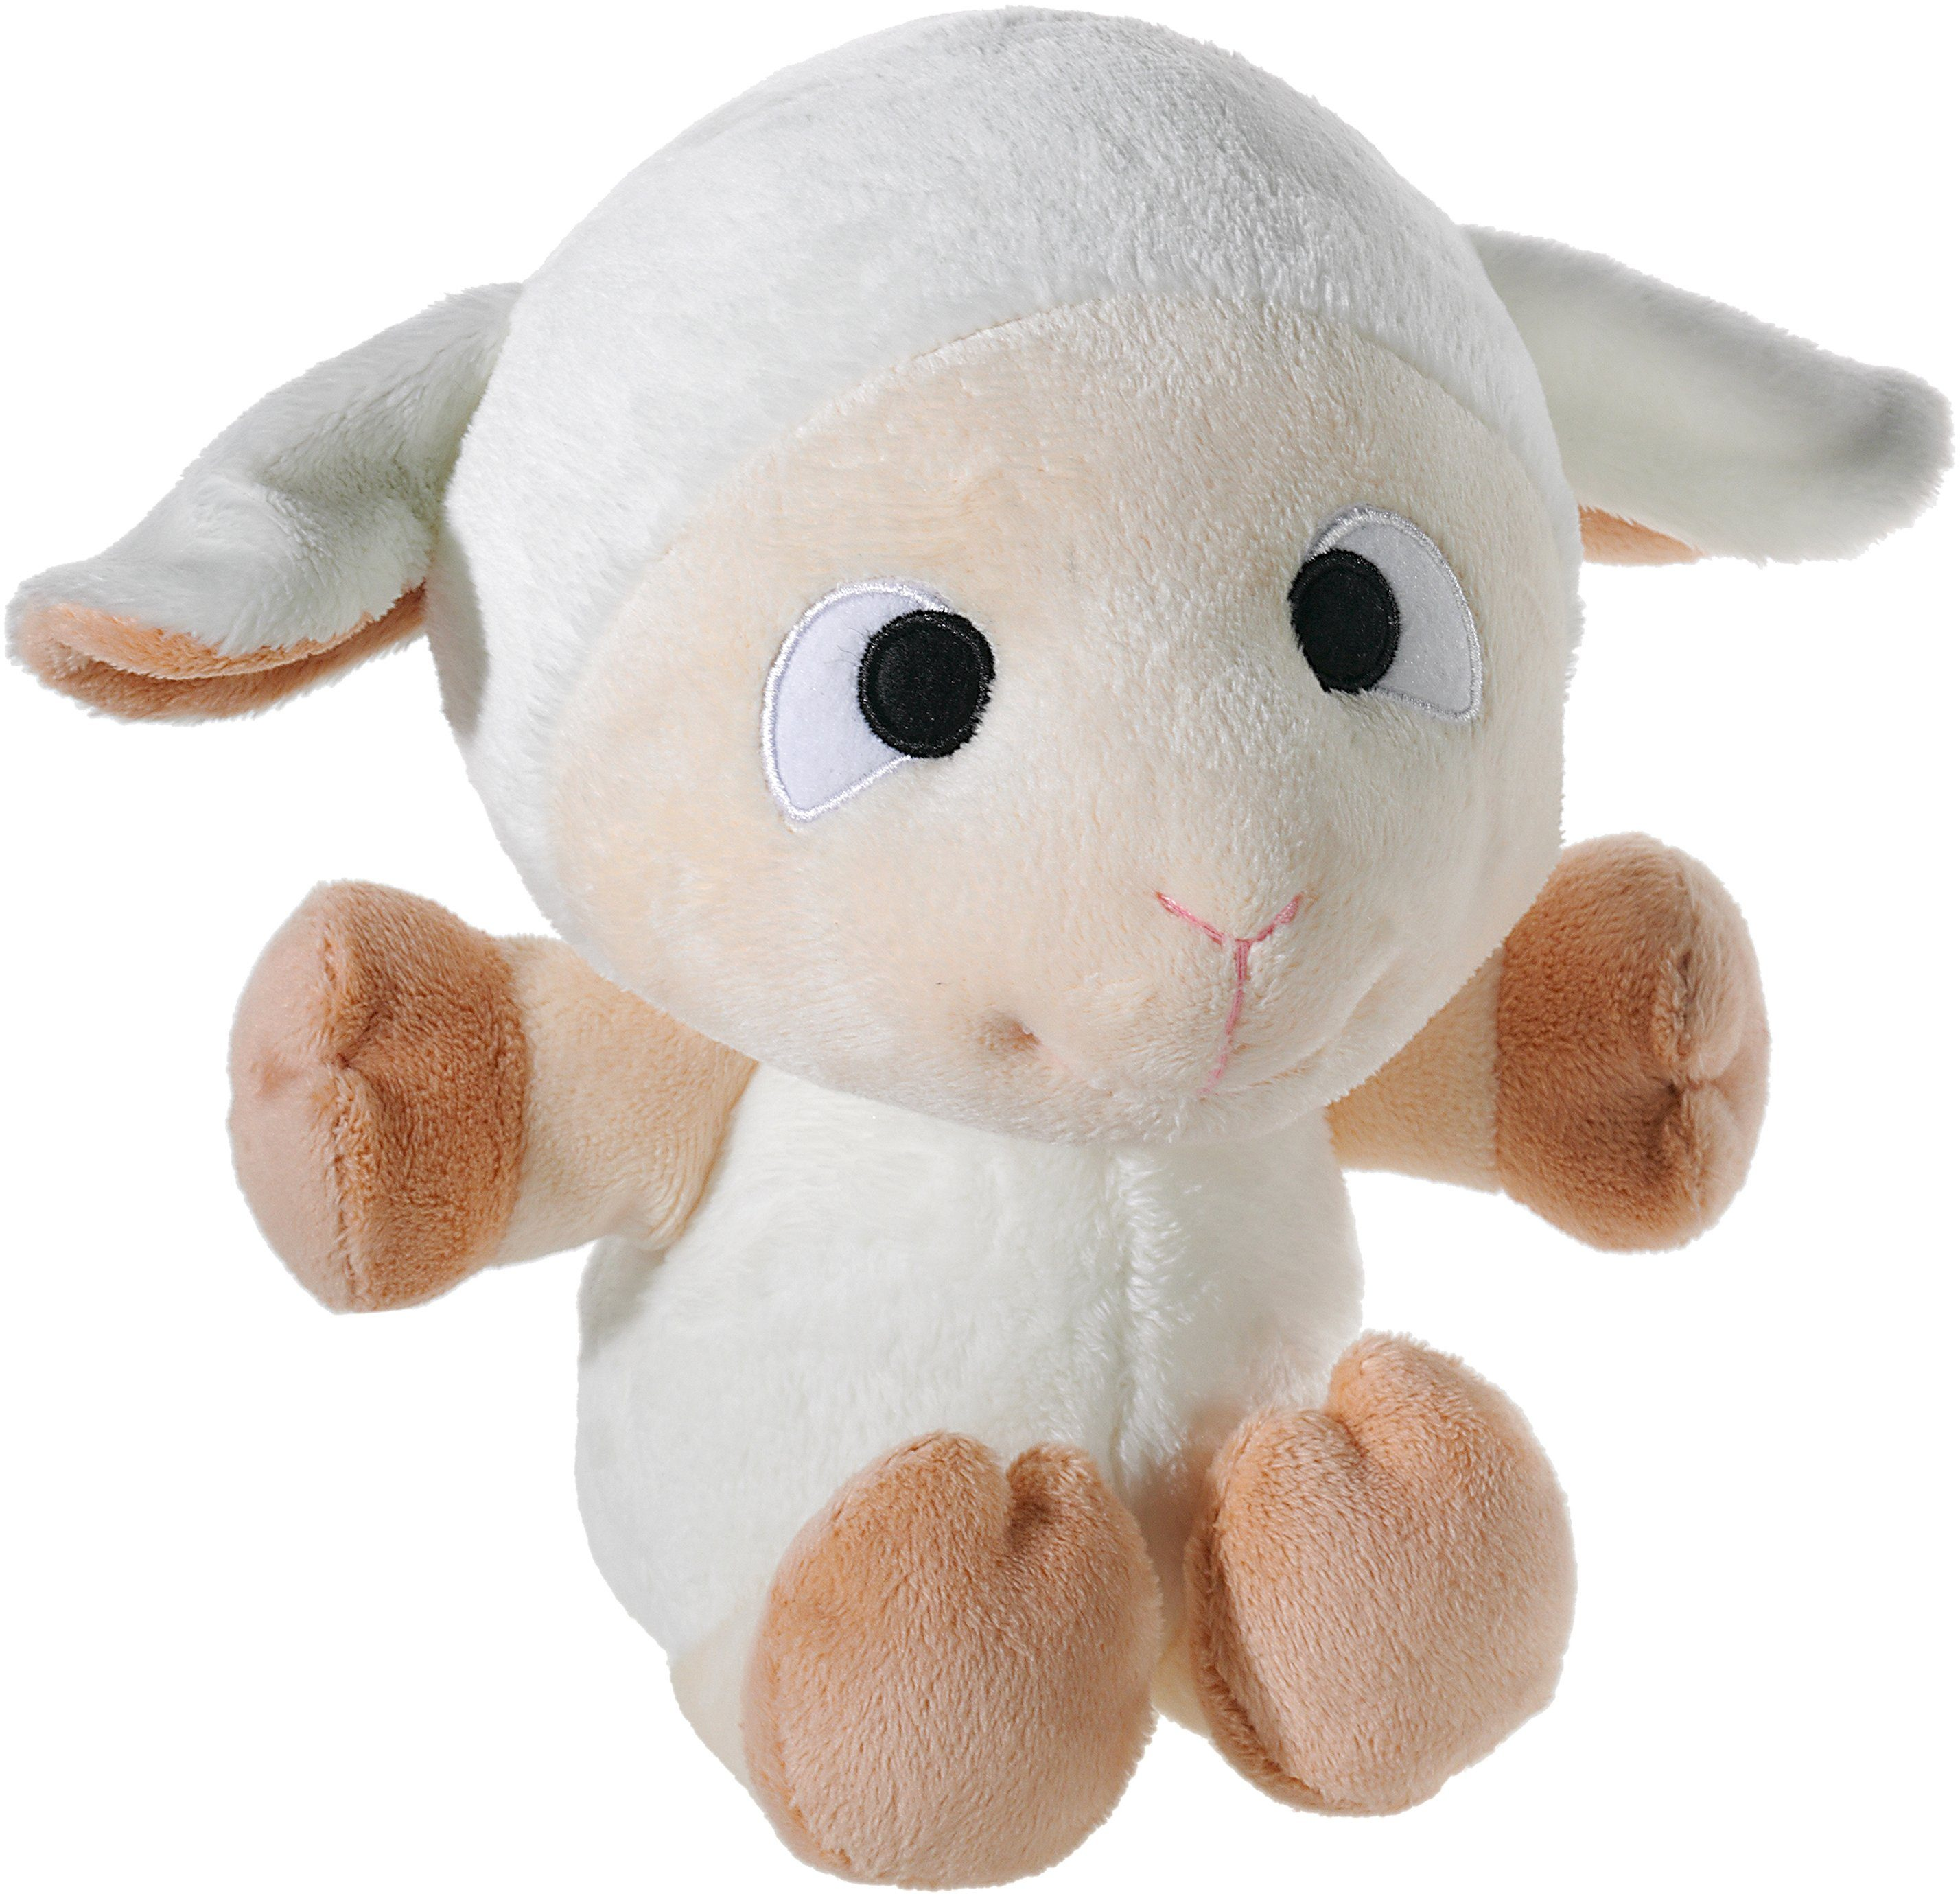 Heunec Kuschelbär, »Friendsheep Friendship Gang Schaf Wolly 28 cm«